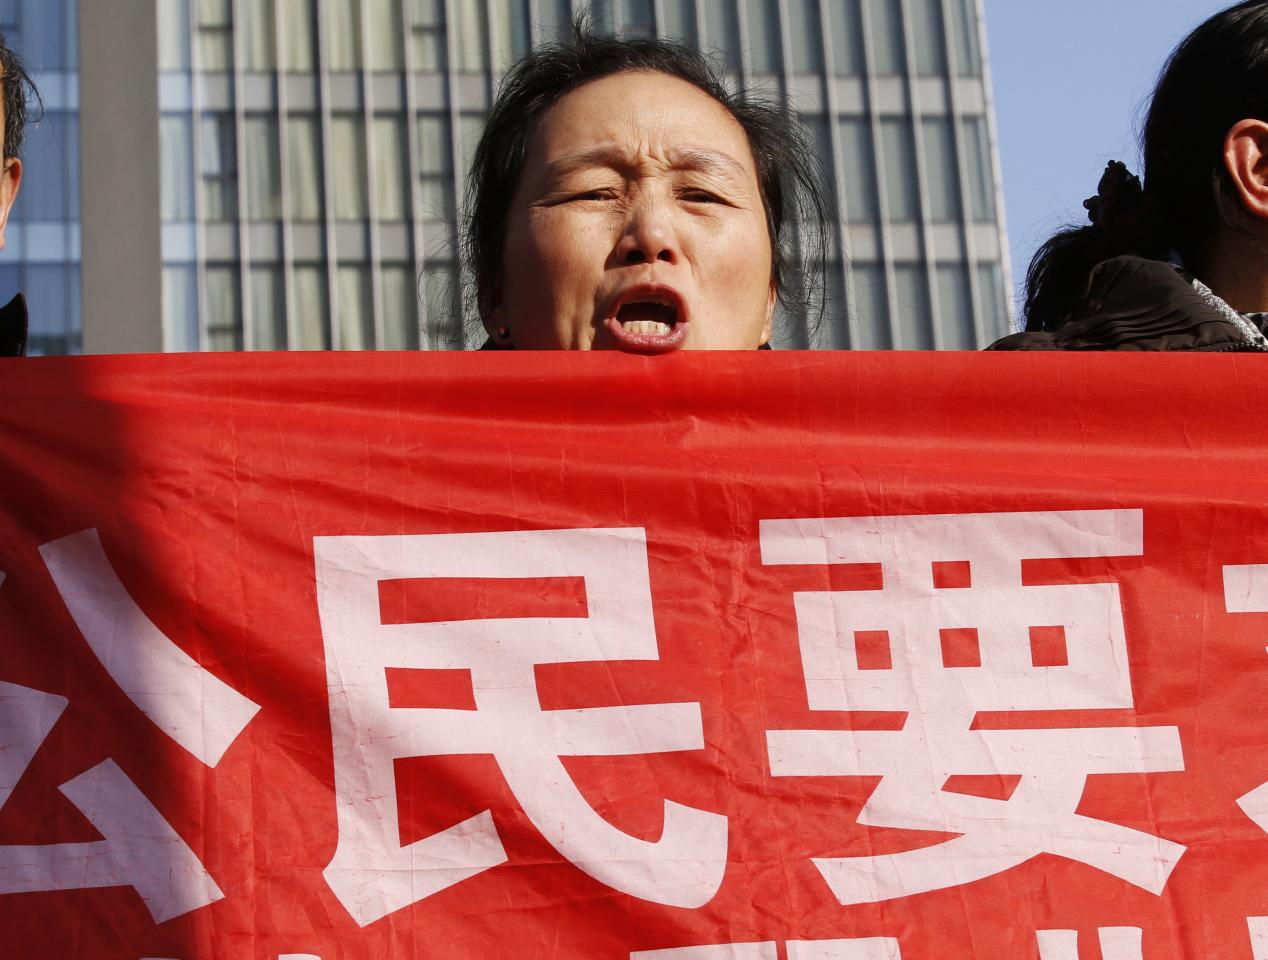 "Supporters of Xu Zhiyong, one of China's most prominent rights advocates, shout slogans near a court where Xu's trial is being held, in Beijing January 22, 2014. Xu, 40, stands trial on Wednesday on a charge of ""gathering a crowd to disturb public order"" punishable by up to five years in prison. His case will almost certainly spark fresh criticism from Western governments over Beijing's crackdown on dissent. The slogan on the placard is a part of slogan that reads: ""Citizens request officials to publicly disclose assets."" 